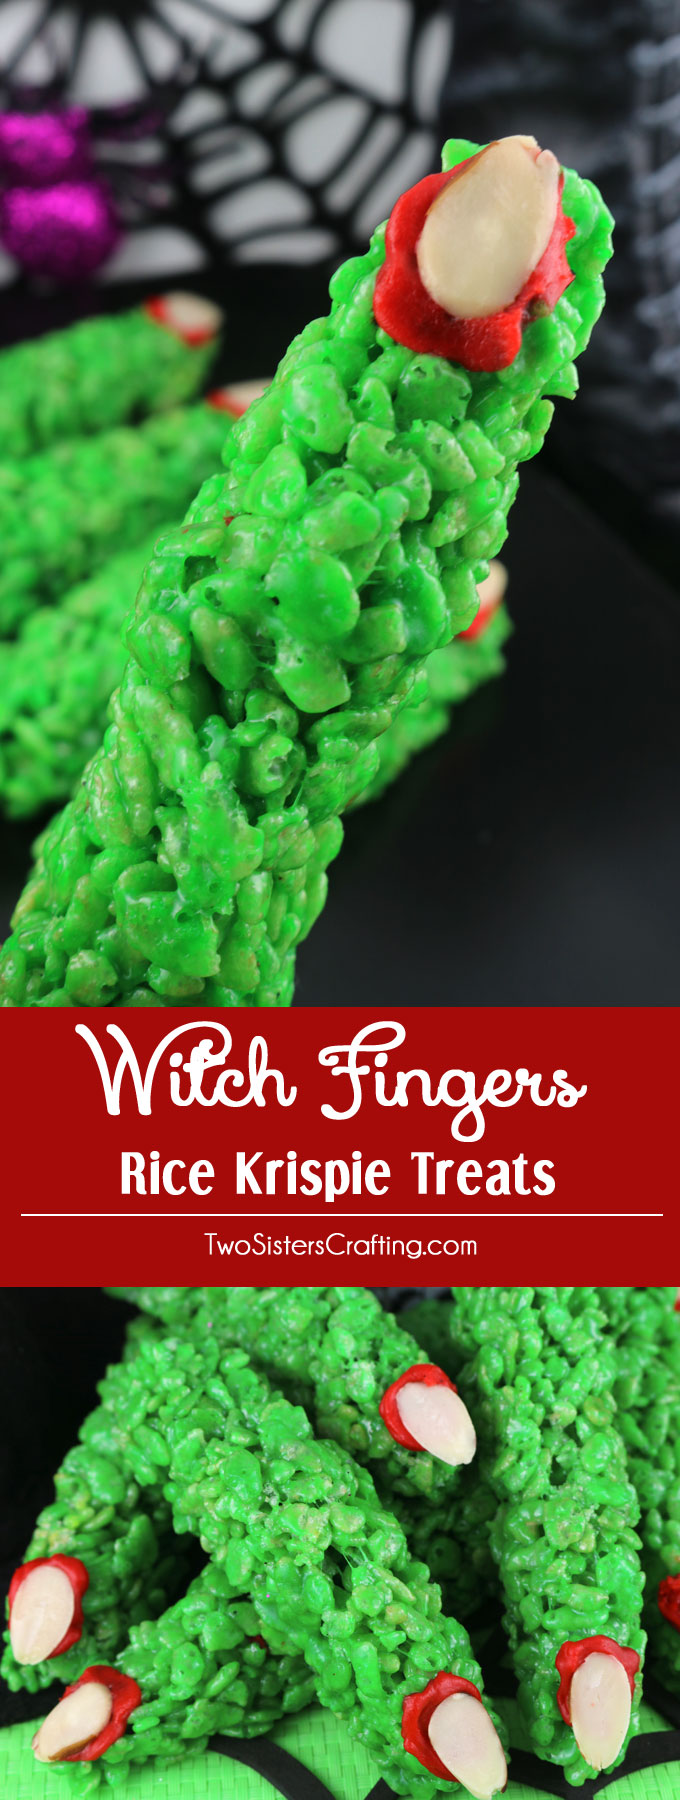 Witch Fingers Rice Krispie Treats - Two Sisters